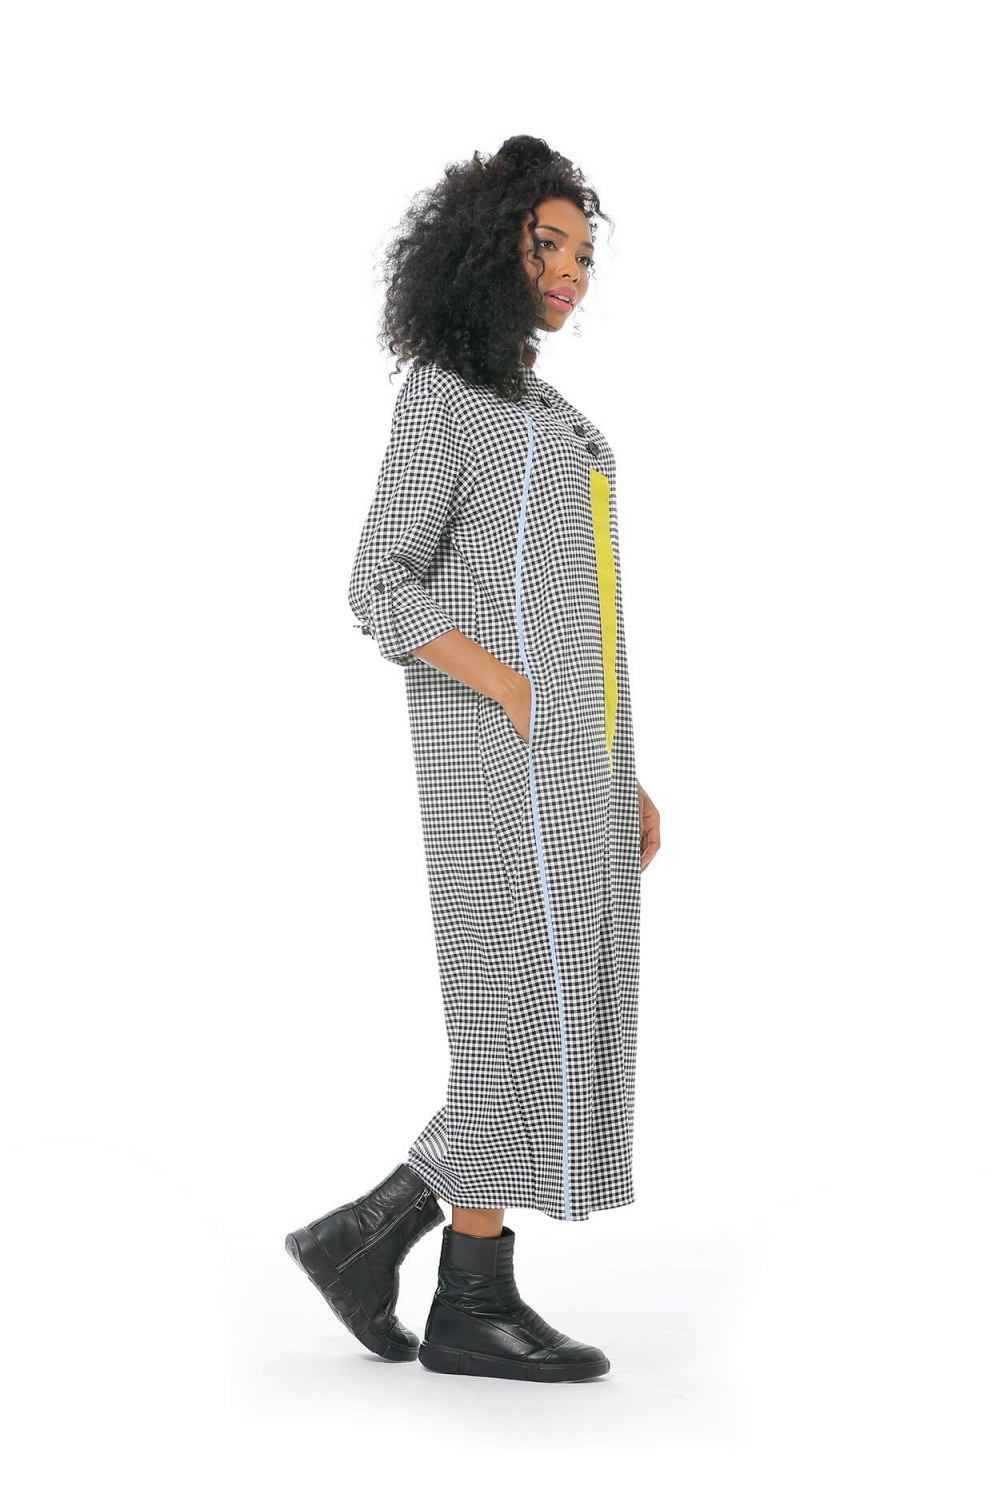 Square Patterned Dress - Mixed